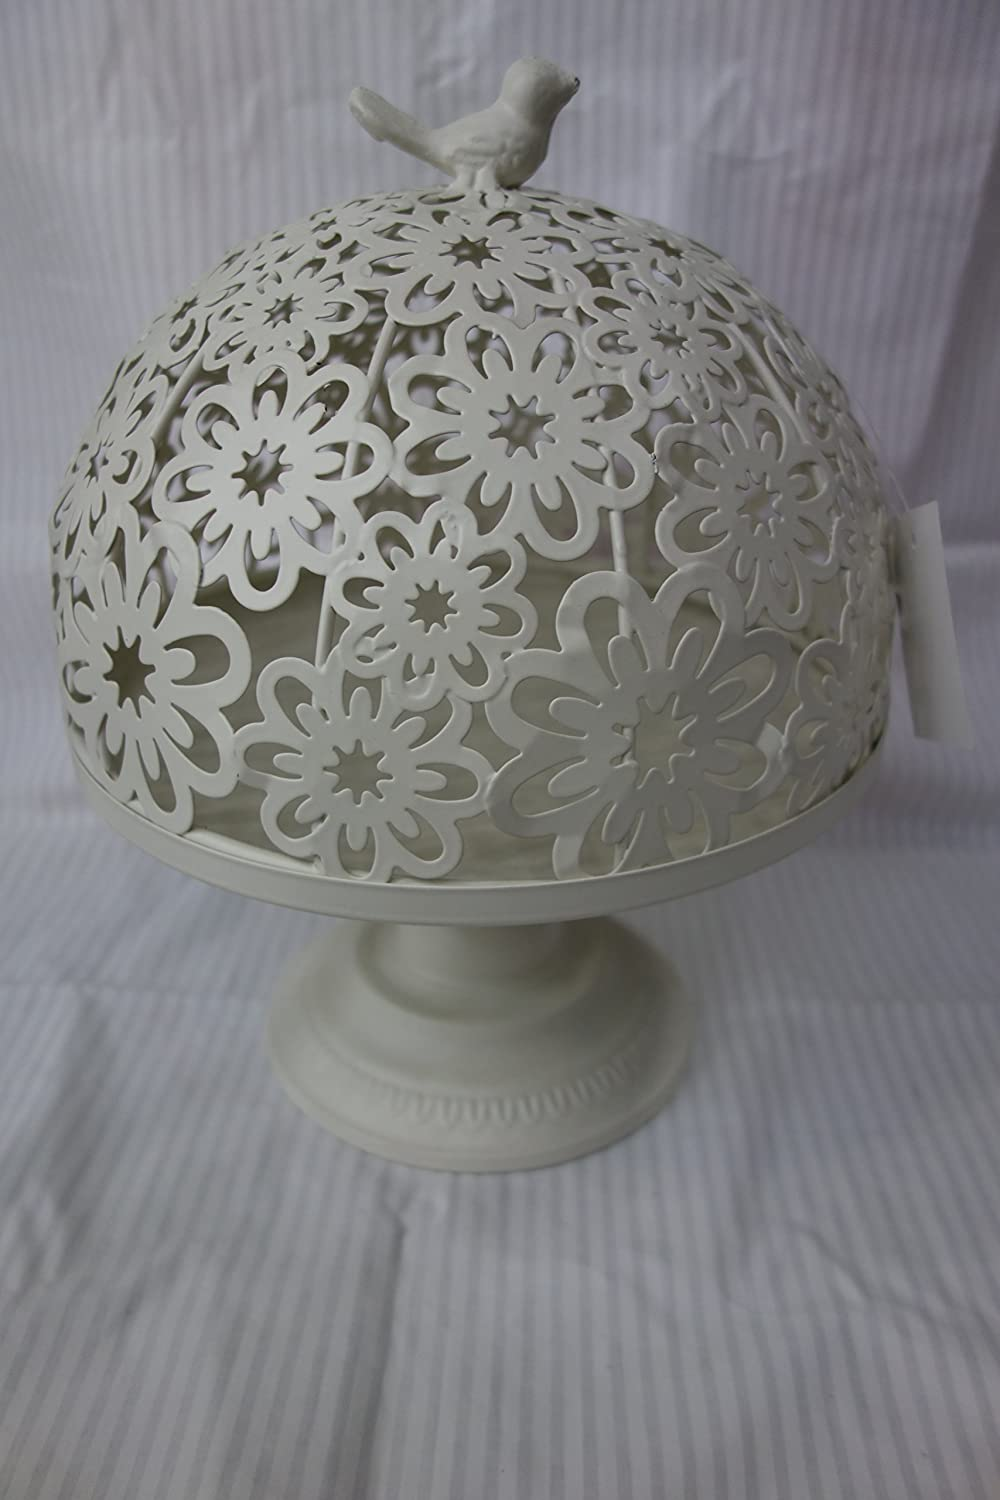 French Style Cake Stand with Cover, Shabby Chic, Unique Metallic Cake Stand hadaaya HK14012